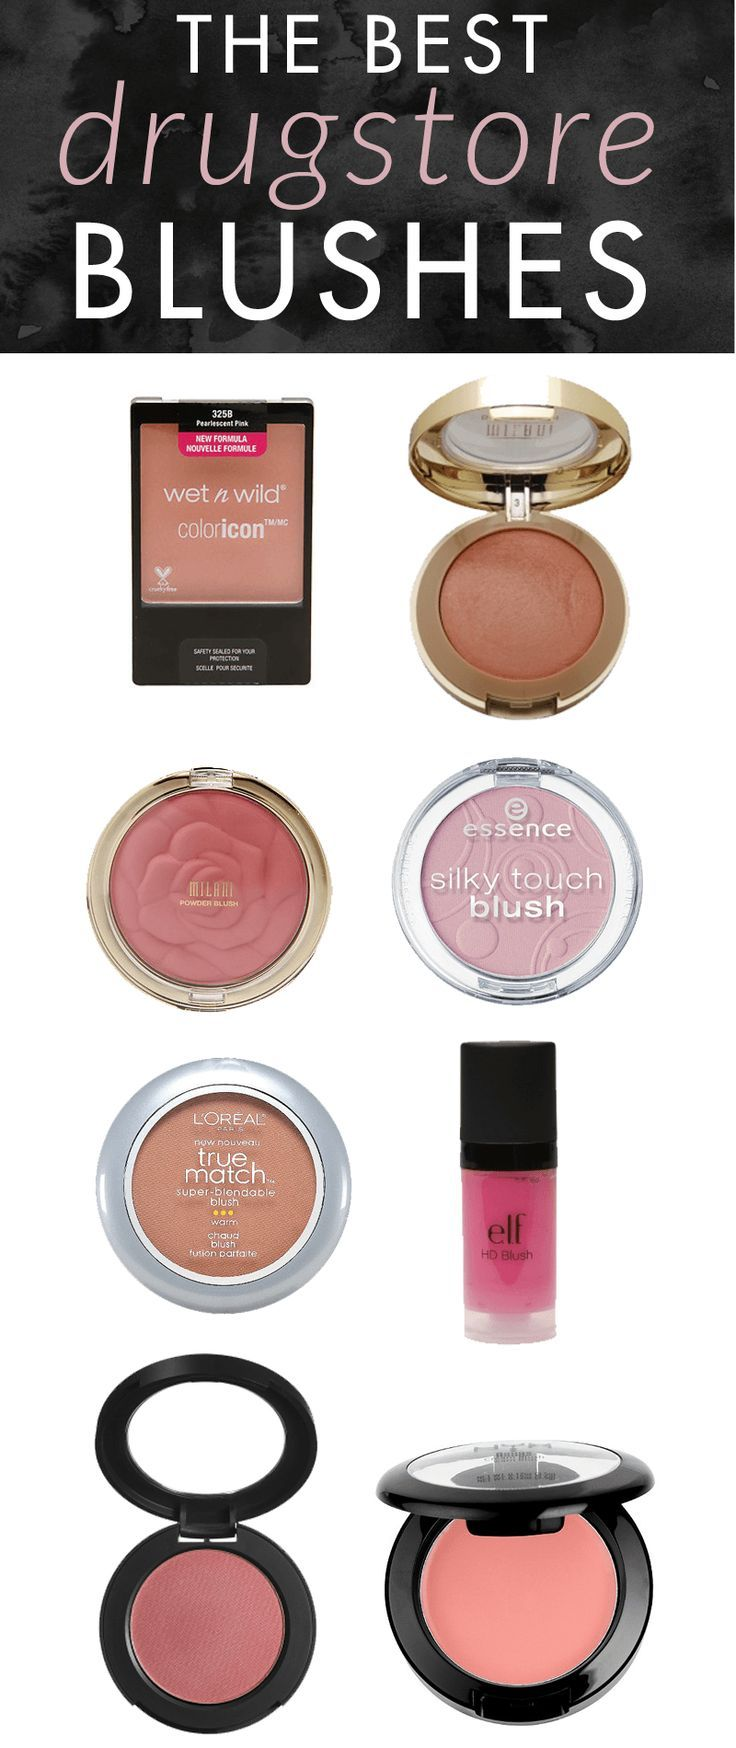 The Best Drugstore Blushes - beautiful blushes can definitely be found at the drugstore. These drugstore blushes have amazing quality and pigmentation. You'll love them!